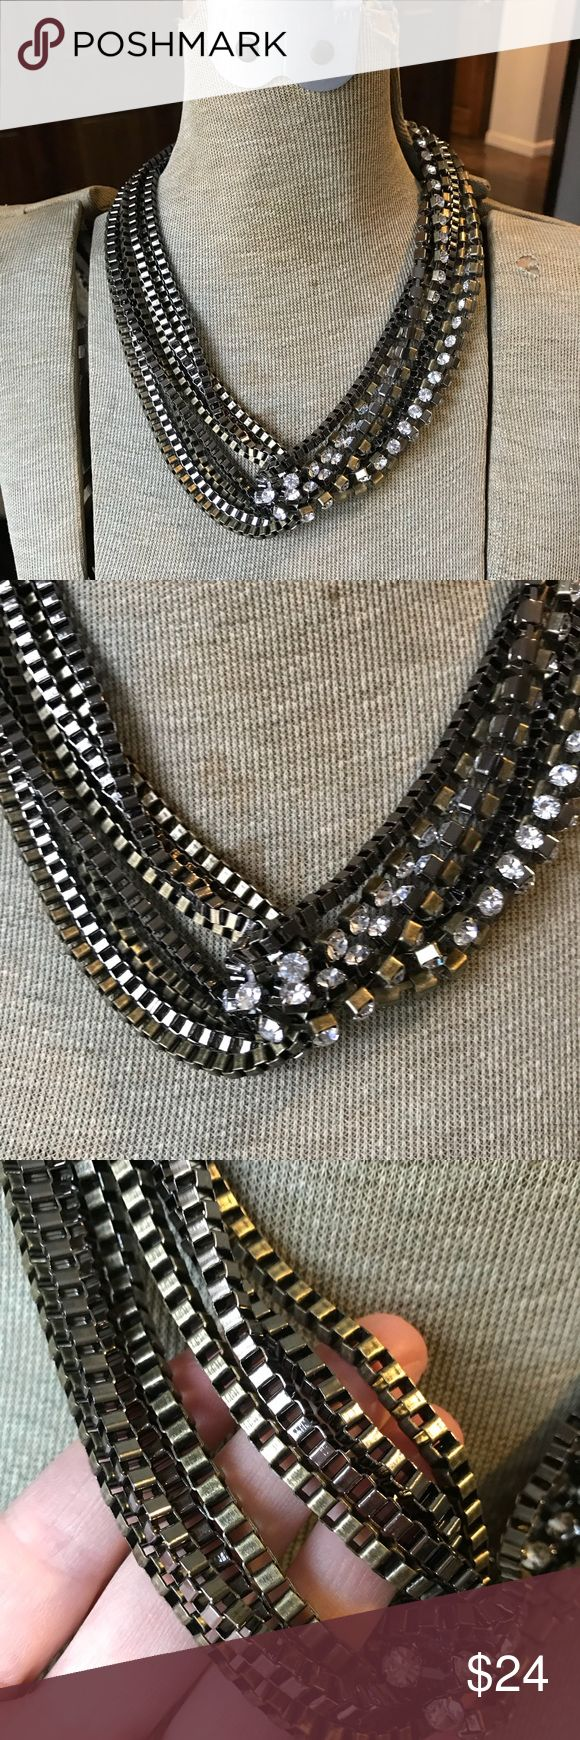 Calvin Klein Brass & Rhinestone Necklace Calvin Klein Brass & Rhinestone Necklace. Cool, edgy and sophisticated all at once! Worn a couple of times and then stored in jewelry box. Great condition Calvin Klein Jewelry Necklaces